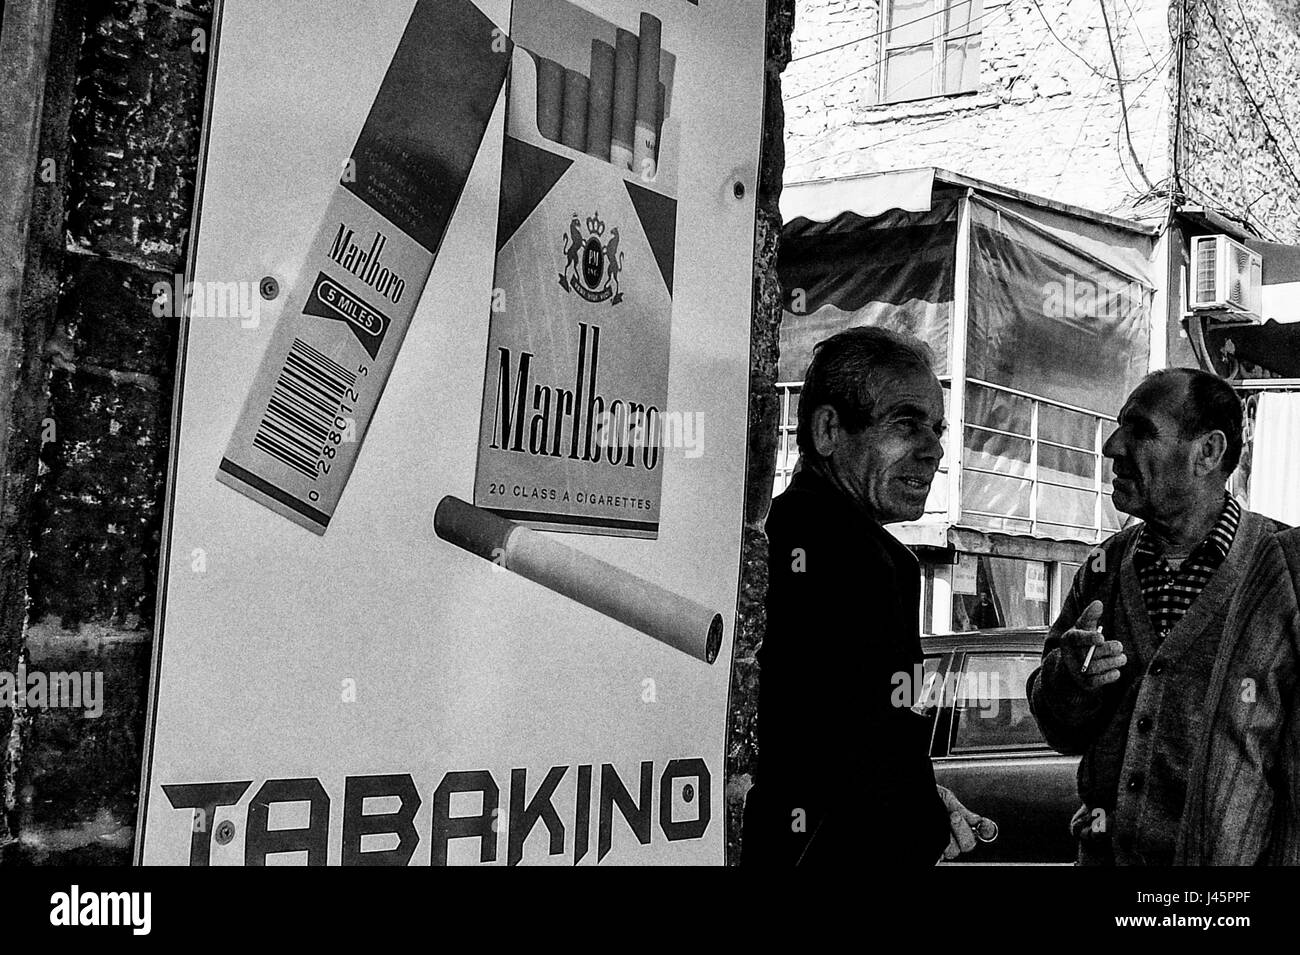 Marlboro Cigarettes Black And White Stock Photos Images Alamy 20 Berat Albania 2nd May 2017 Views Of The City